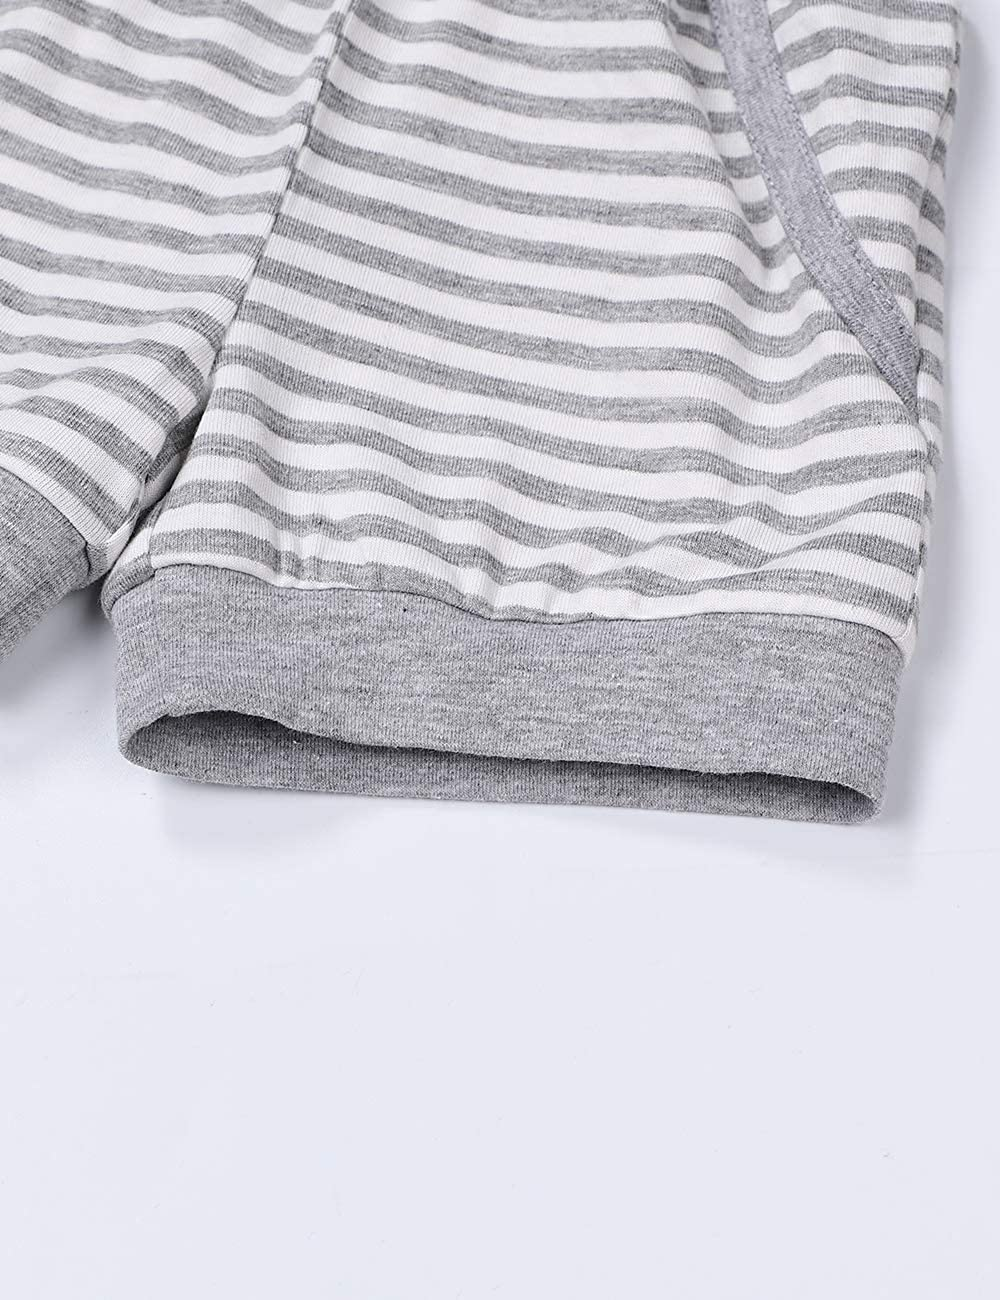 2Pcs Toddler Baby Boy Clothes Summer Sleeveless Vest Tops Stripe Shorts Outfit Set